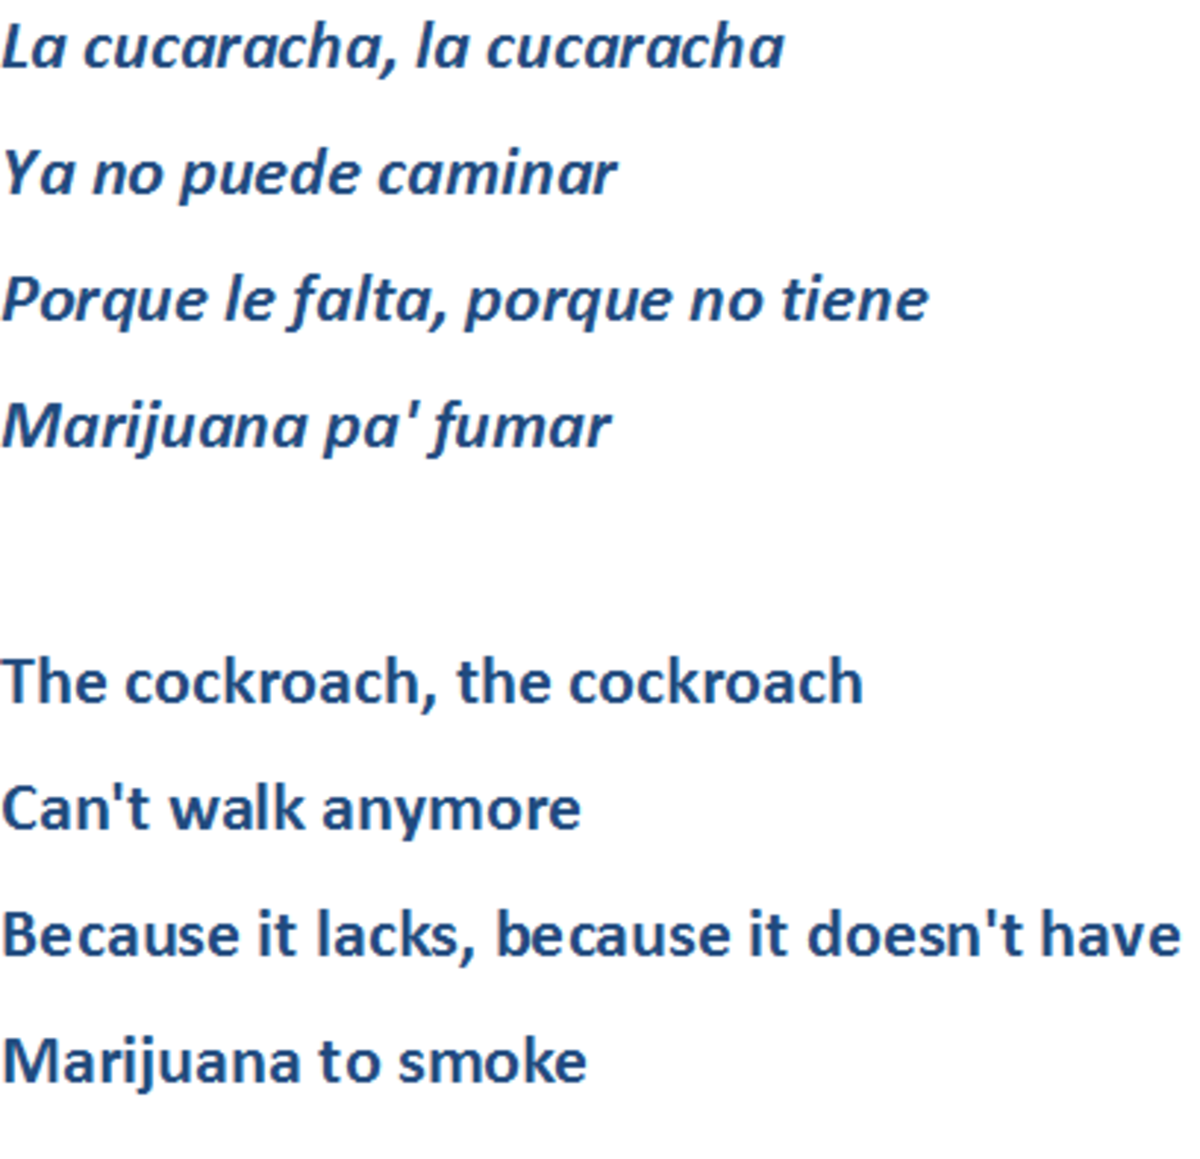 """""""La Cucaracha"""" lyrics from the Mexican Revolution (1910-1917) refer to marijuana. The """"cockroach"""" is the lowly soldier."""